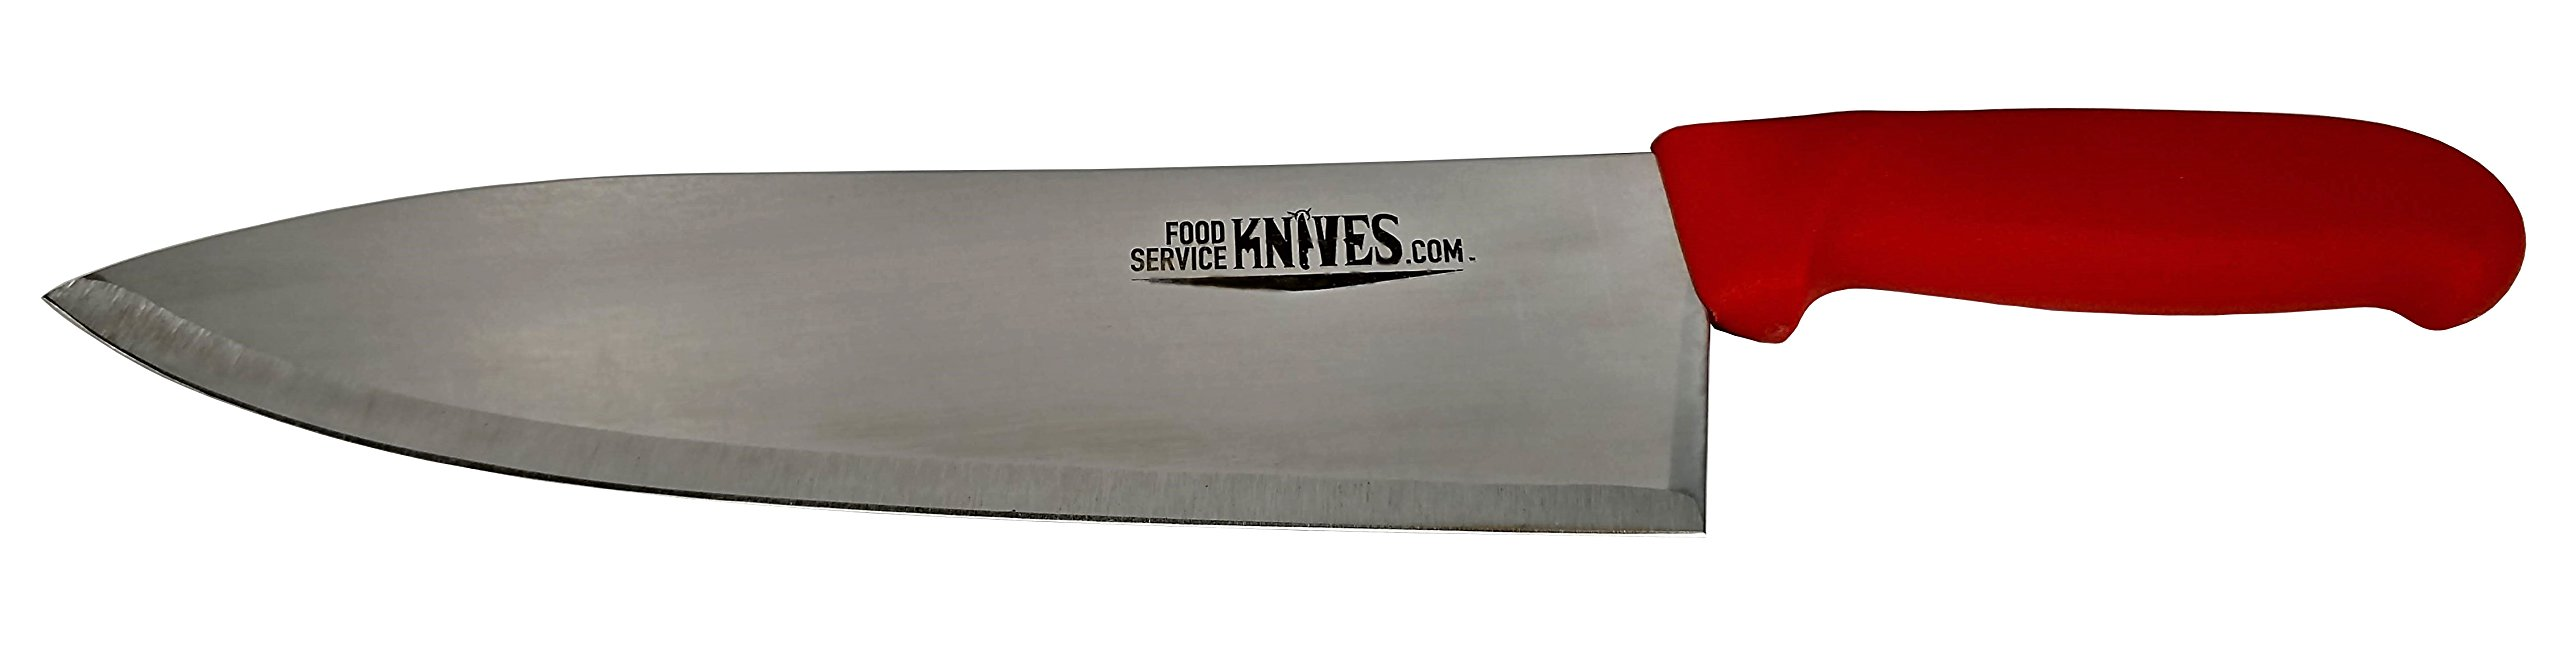 "Food Service Knives 10"" Professional Restaurant Chef Knife - Red - Color Coded for Safety - Choose Black, Blue, Red, Green, or Yellow - Cook French Stainless Steel New Sharp (Red)"